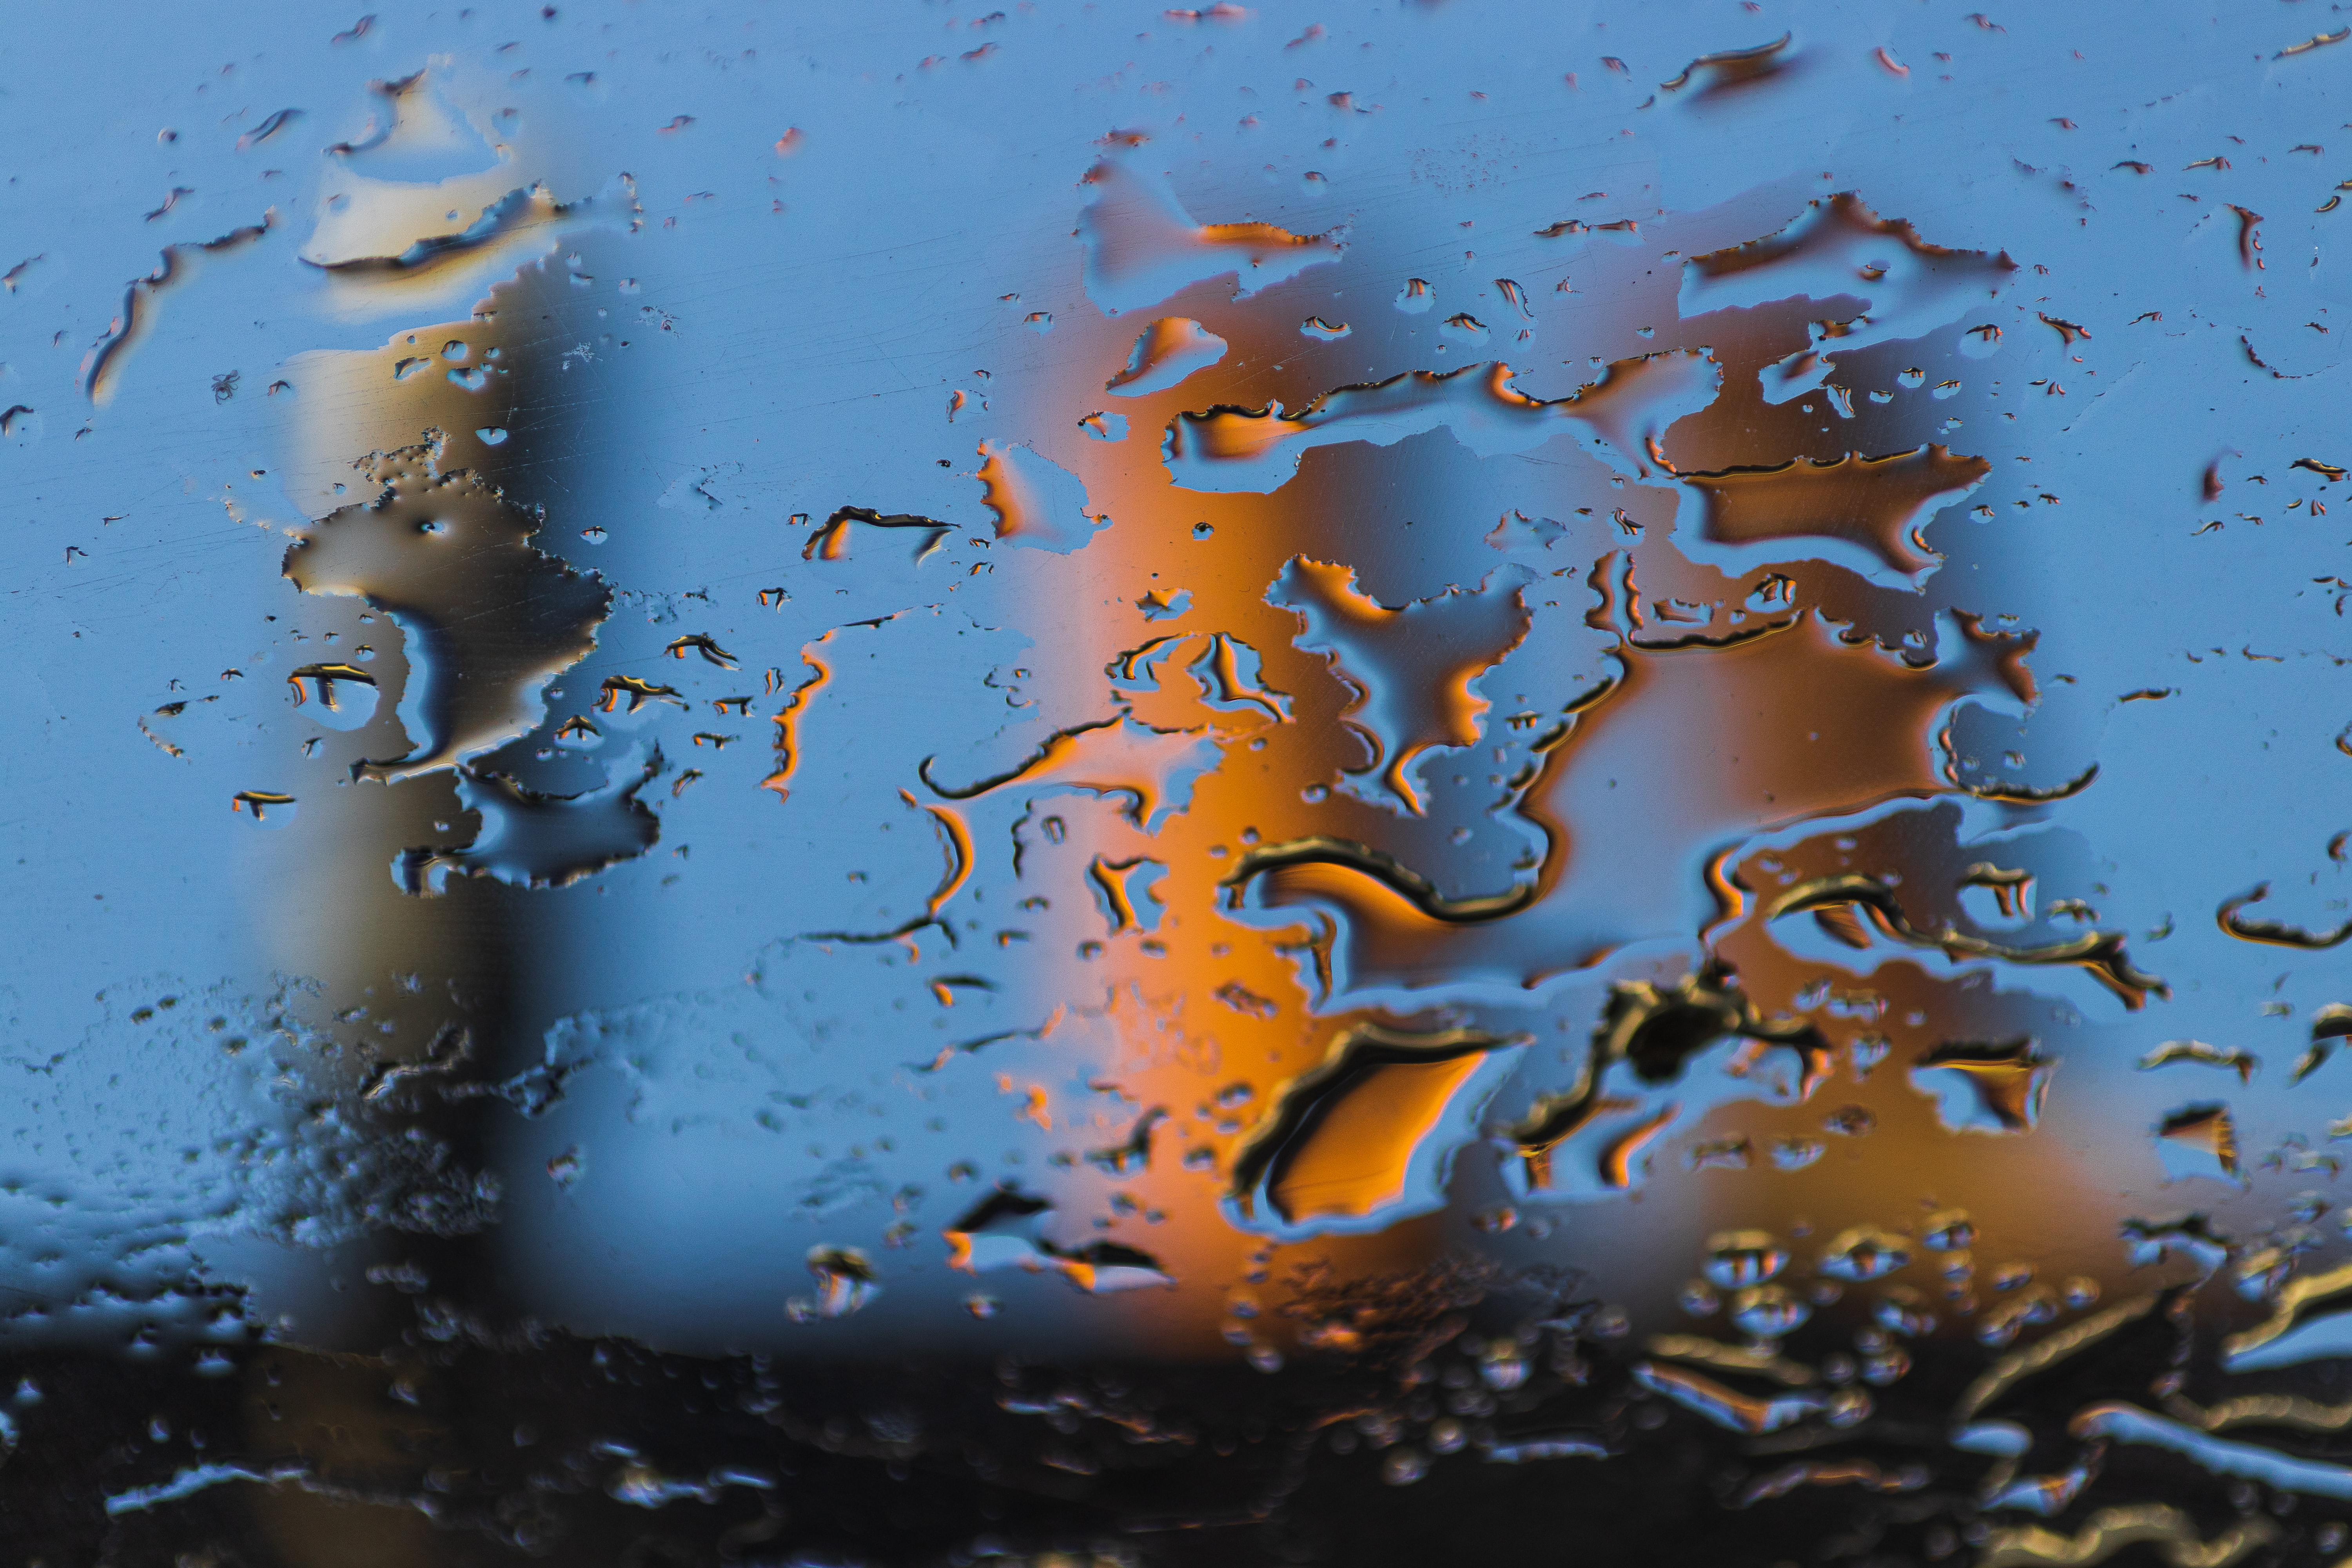 151237 download wallpaper Miscellanea, Miscellaneous, Drops, Water, Blur, Smooth, Glass, Wet screensavers and pictures for free